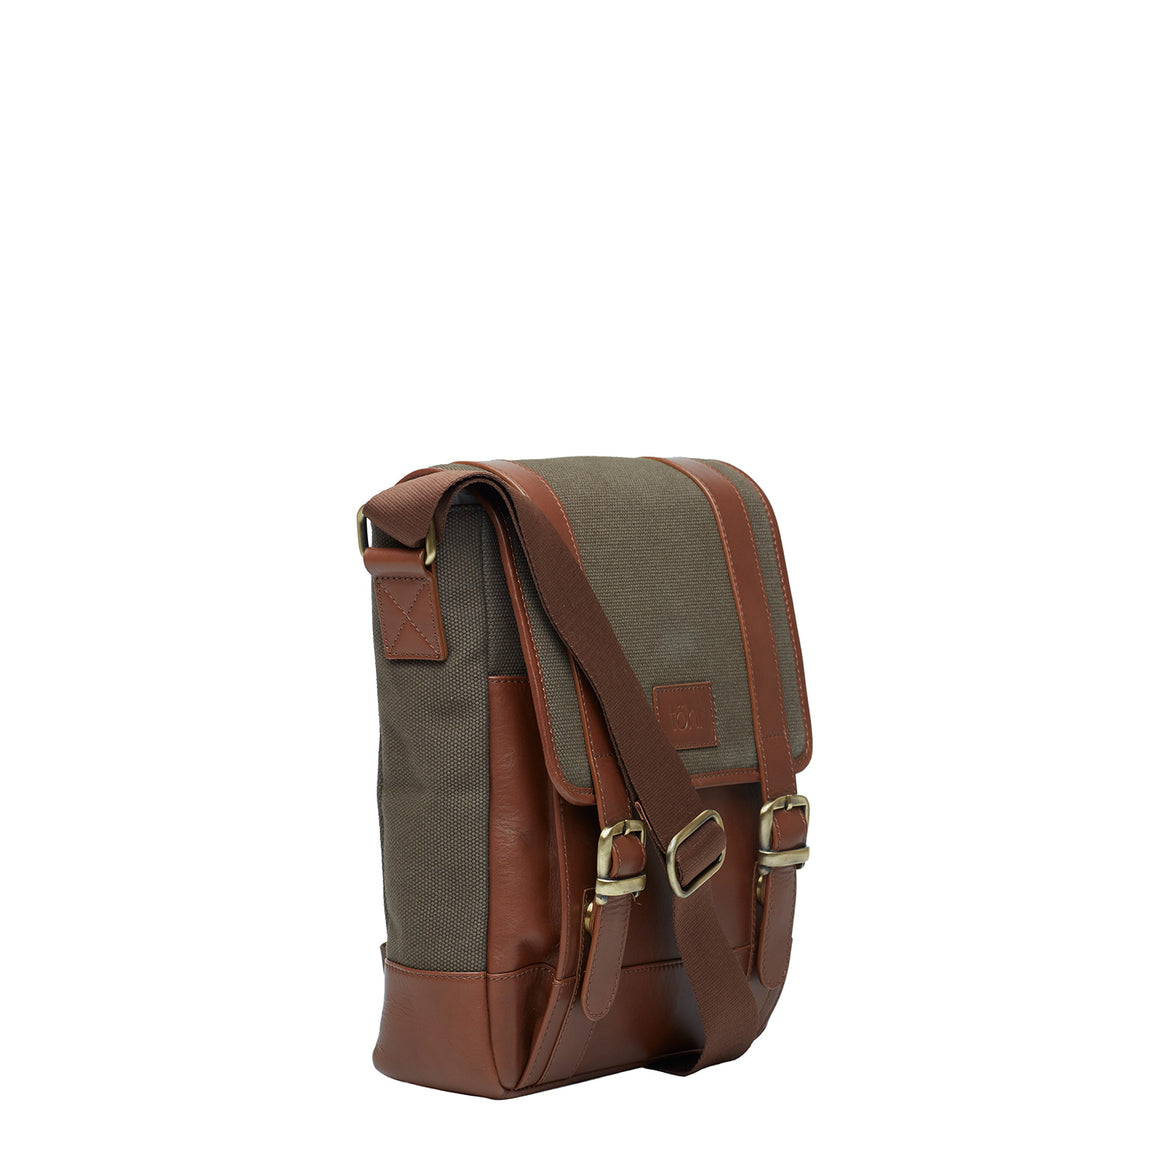 MS 0006 - TOHL PATRO MEN'S CROSSBODY & MESSENGER - OLIVE